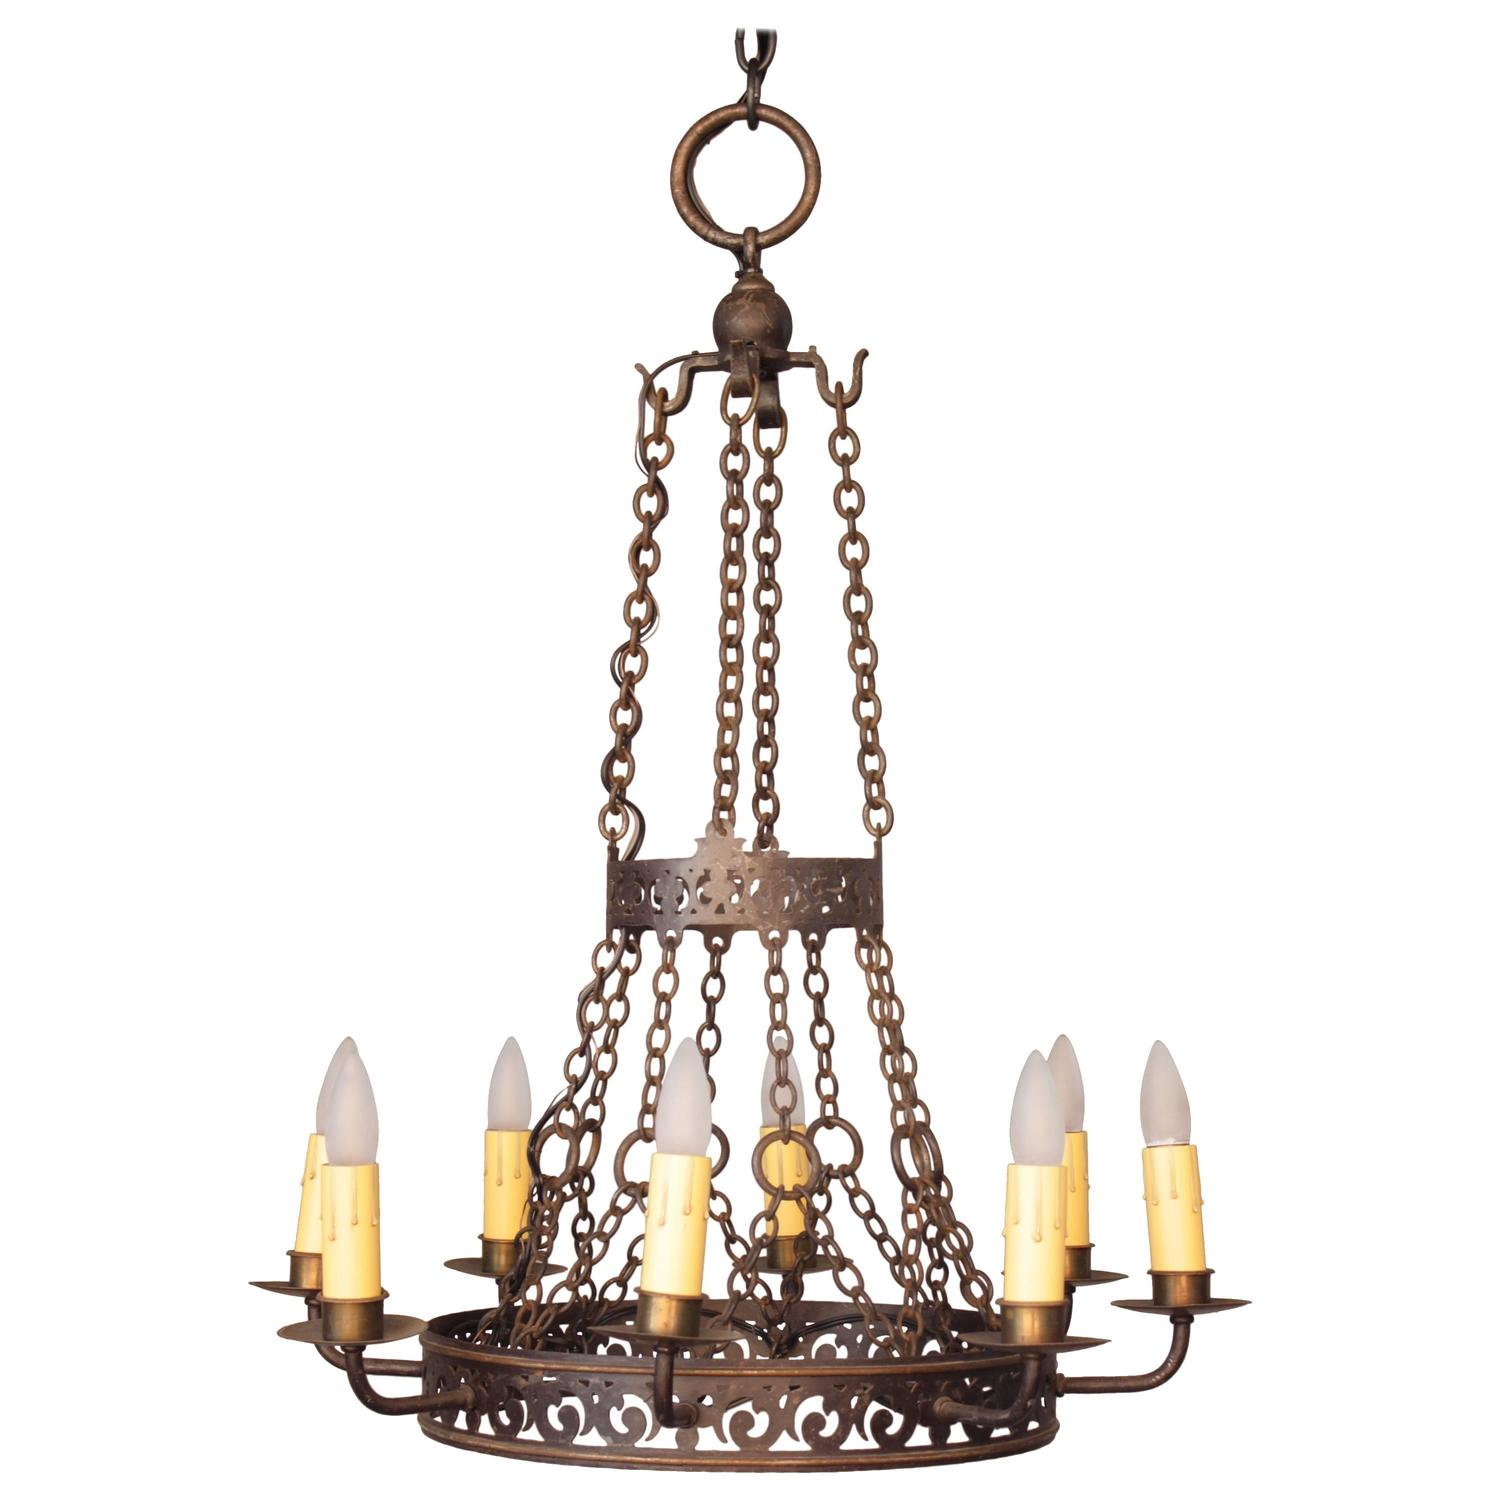 Exquisite antique spanish revival eight light chandelier for Spanish revival lighting